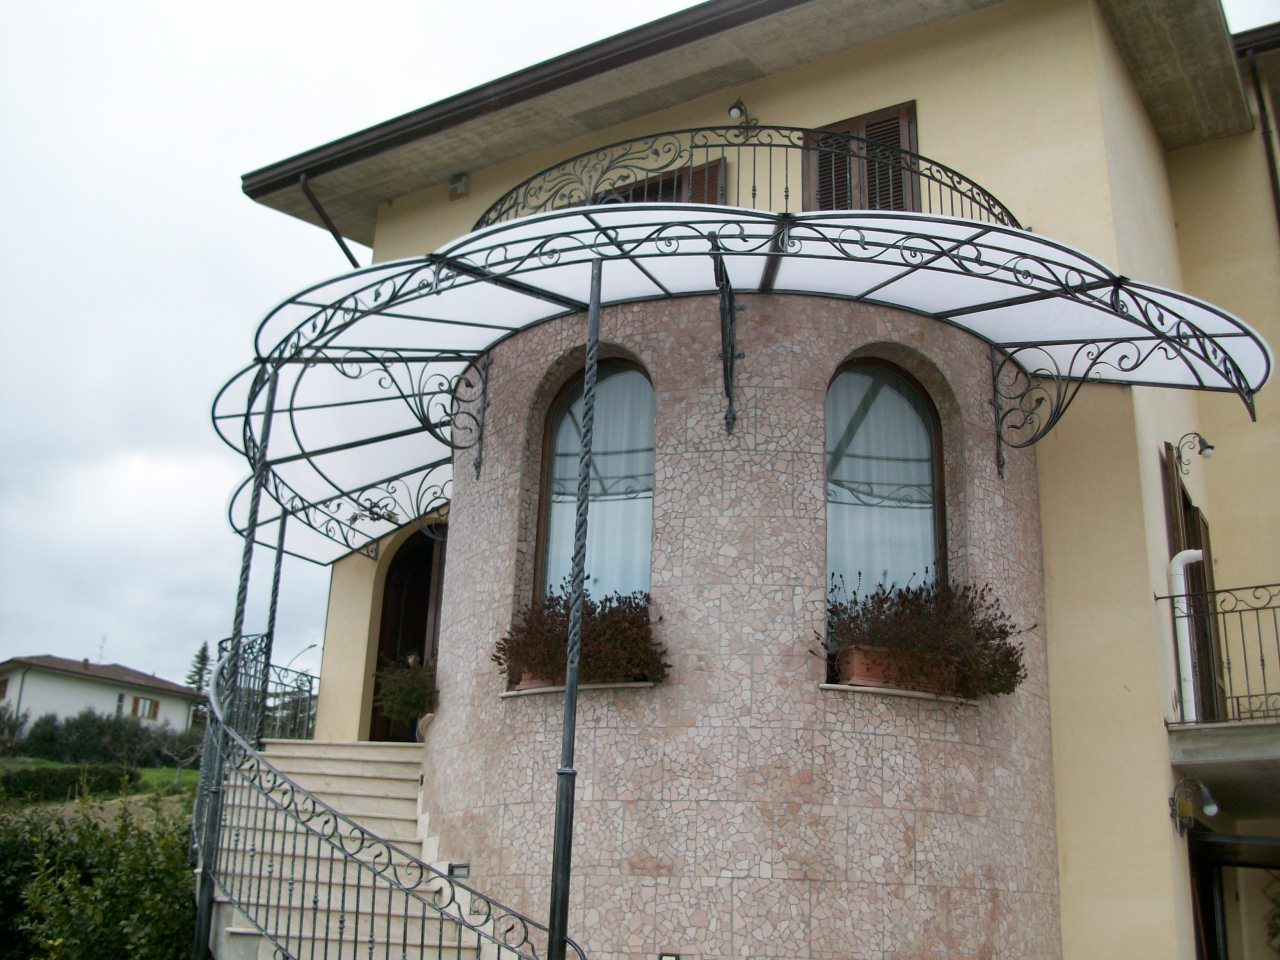 Canopies Wrought Iron Canopies Canopies For Terraces